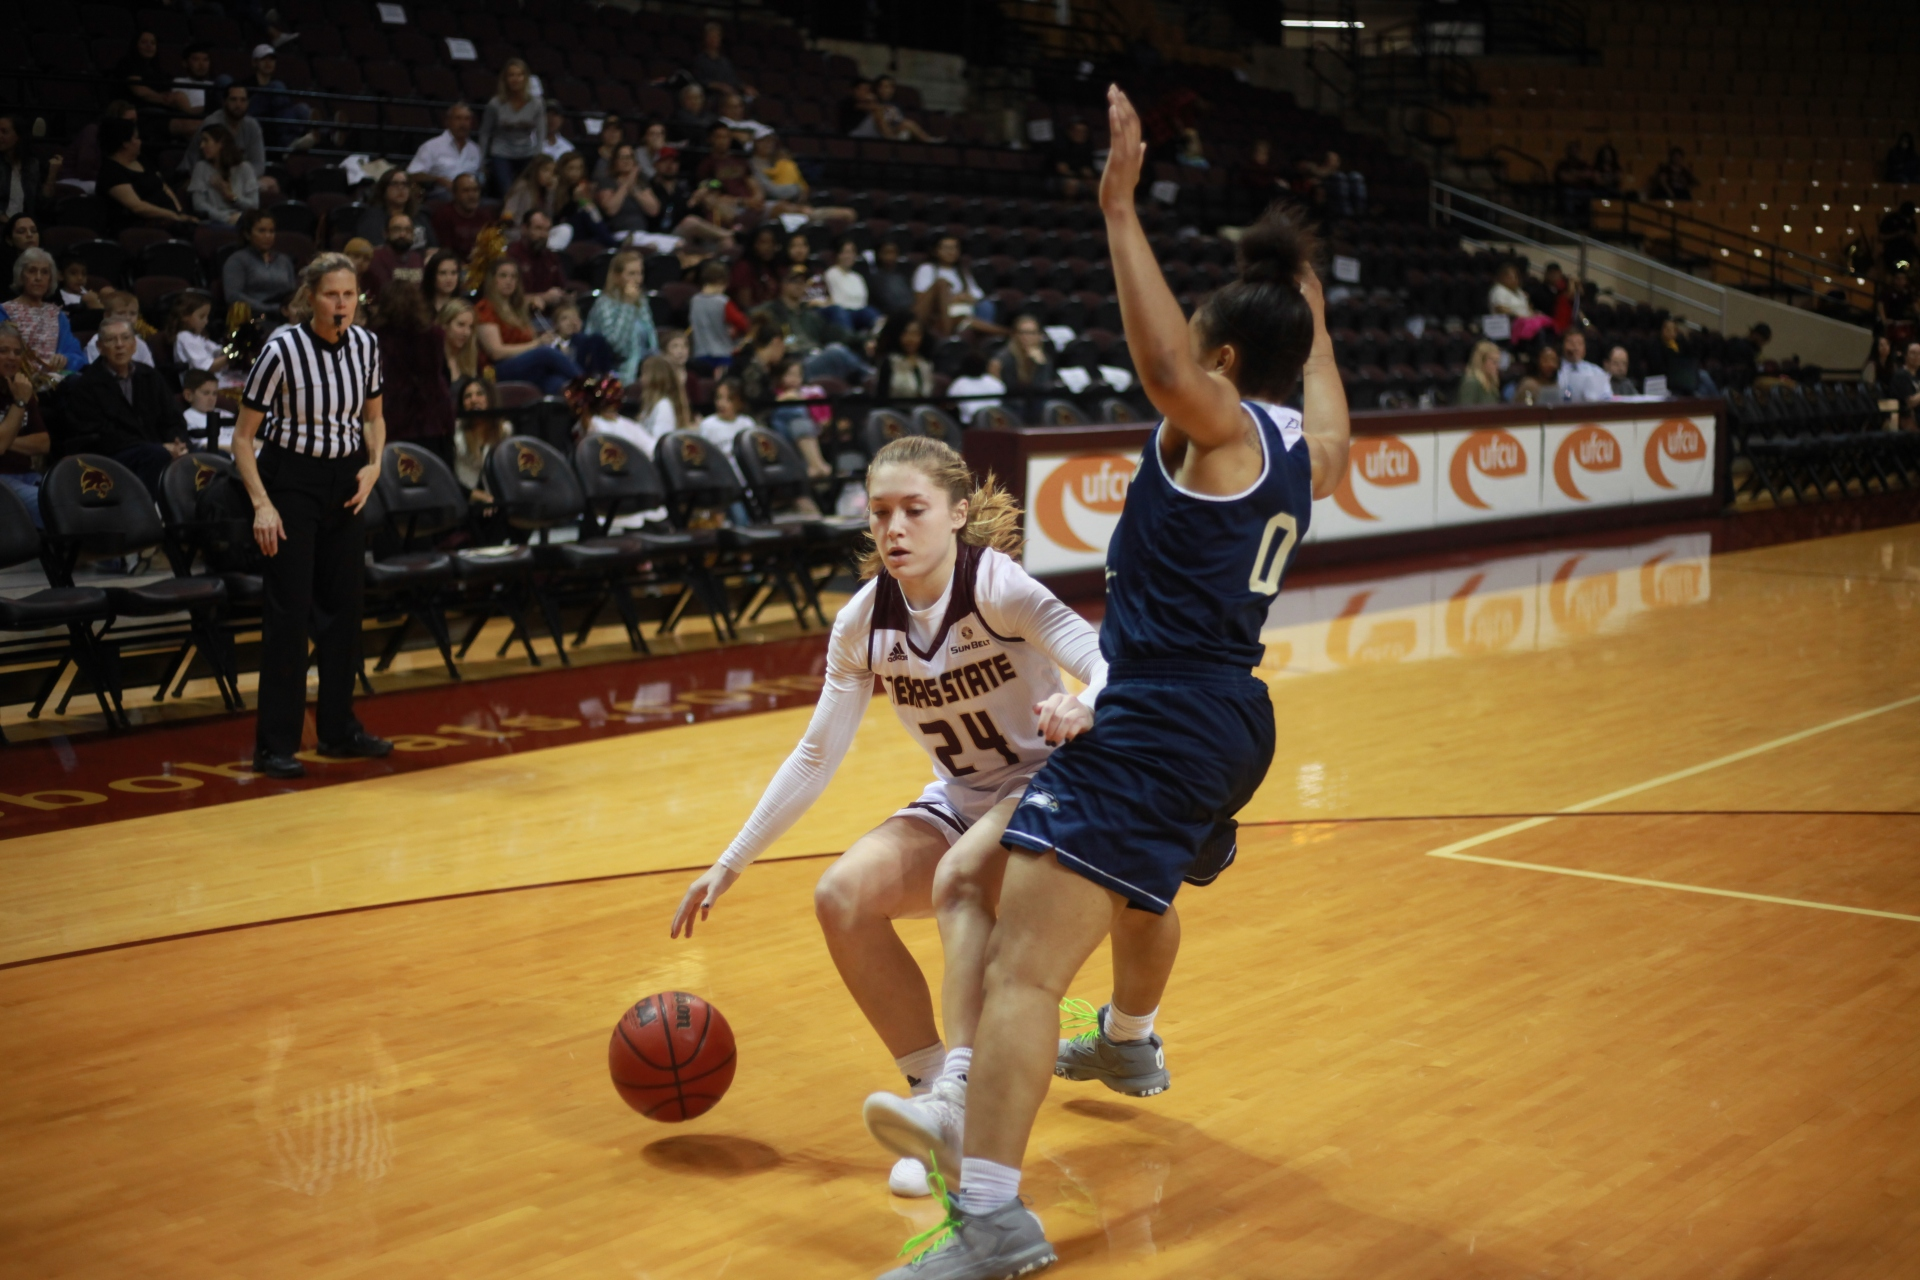 Starting Guard Brooke Holle drives to the hoop knocking down two of her seventeen total points